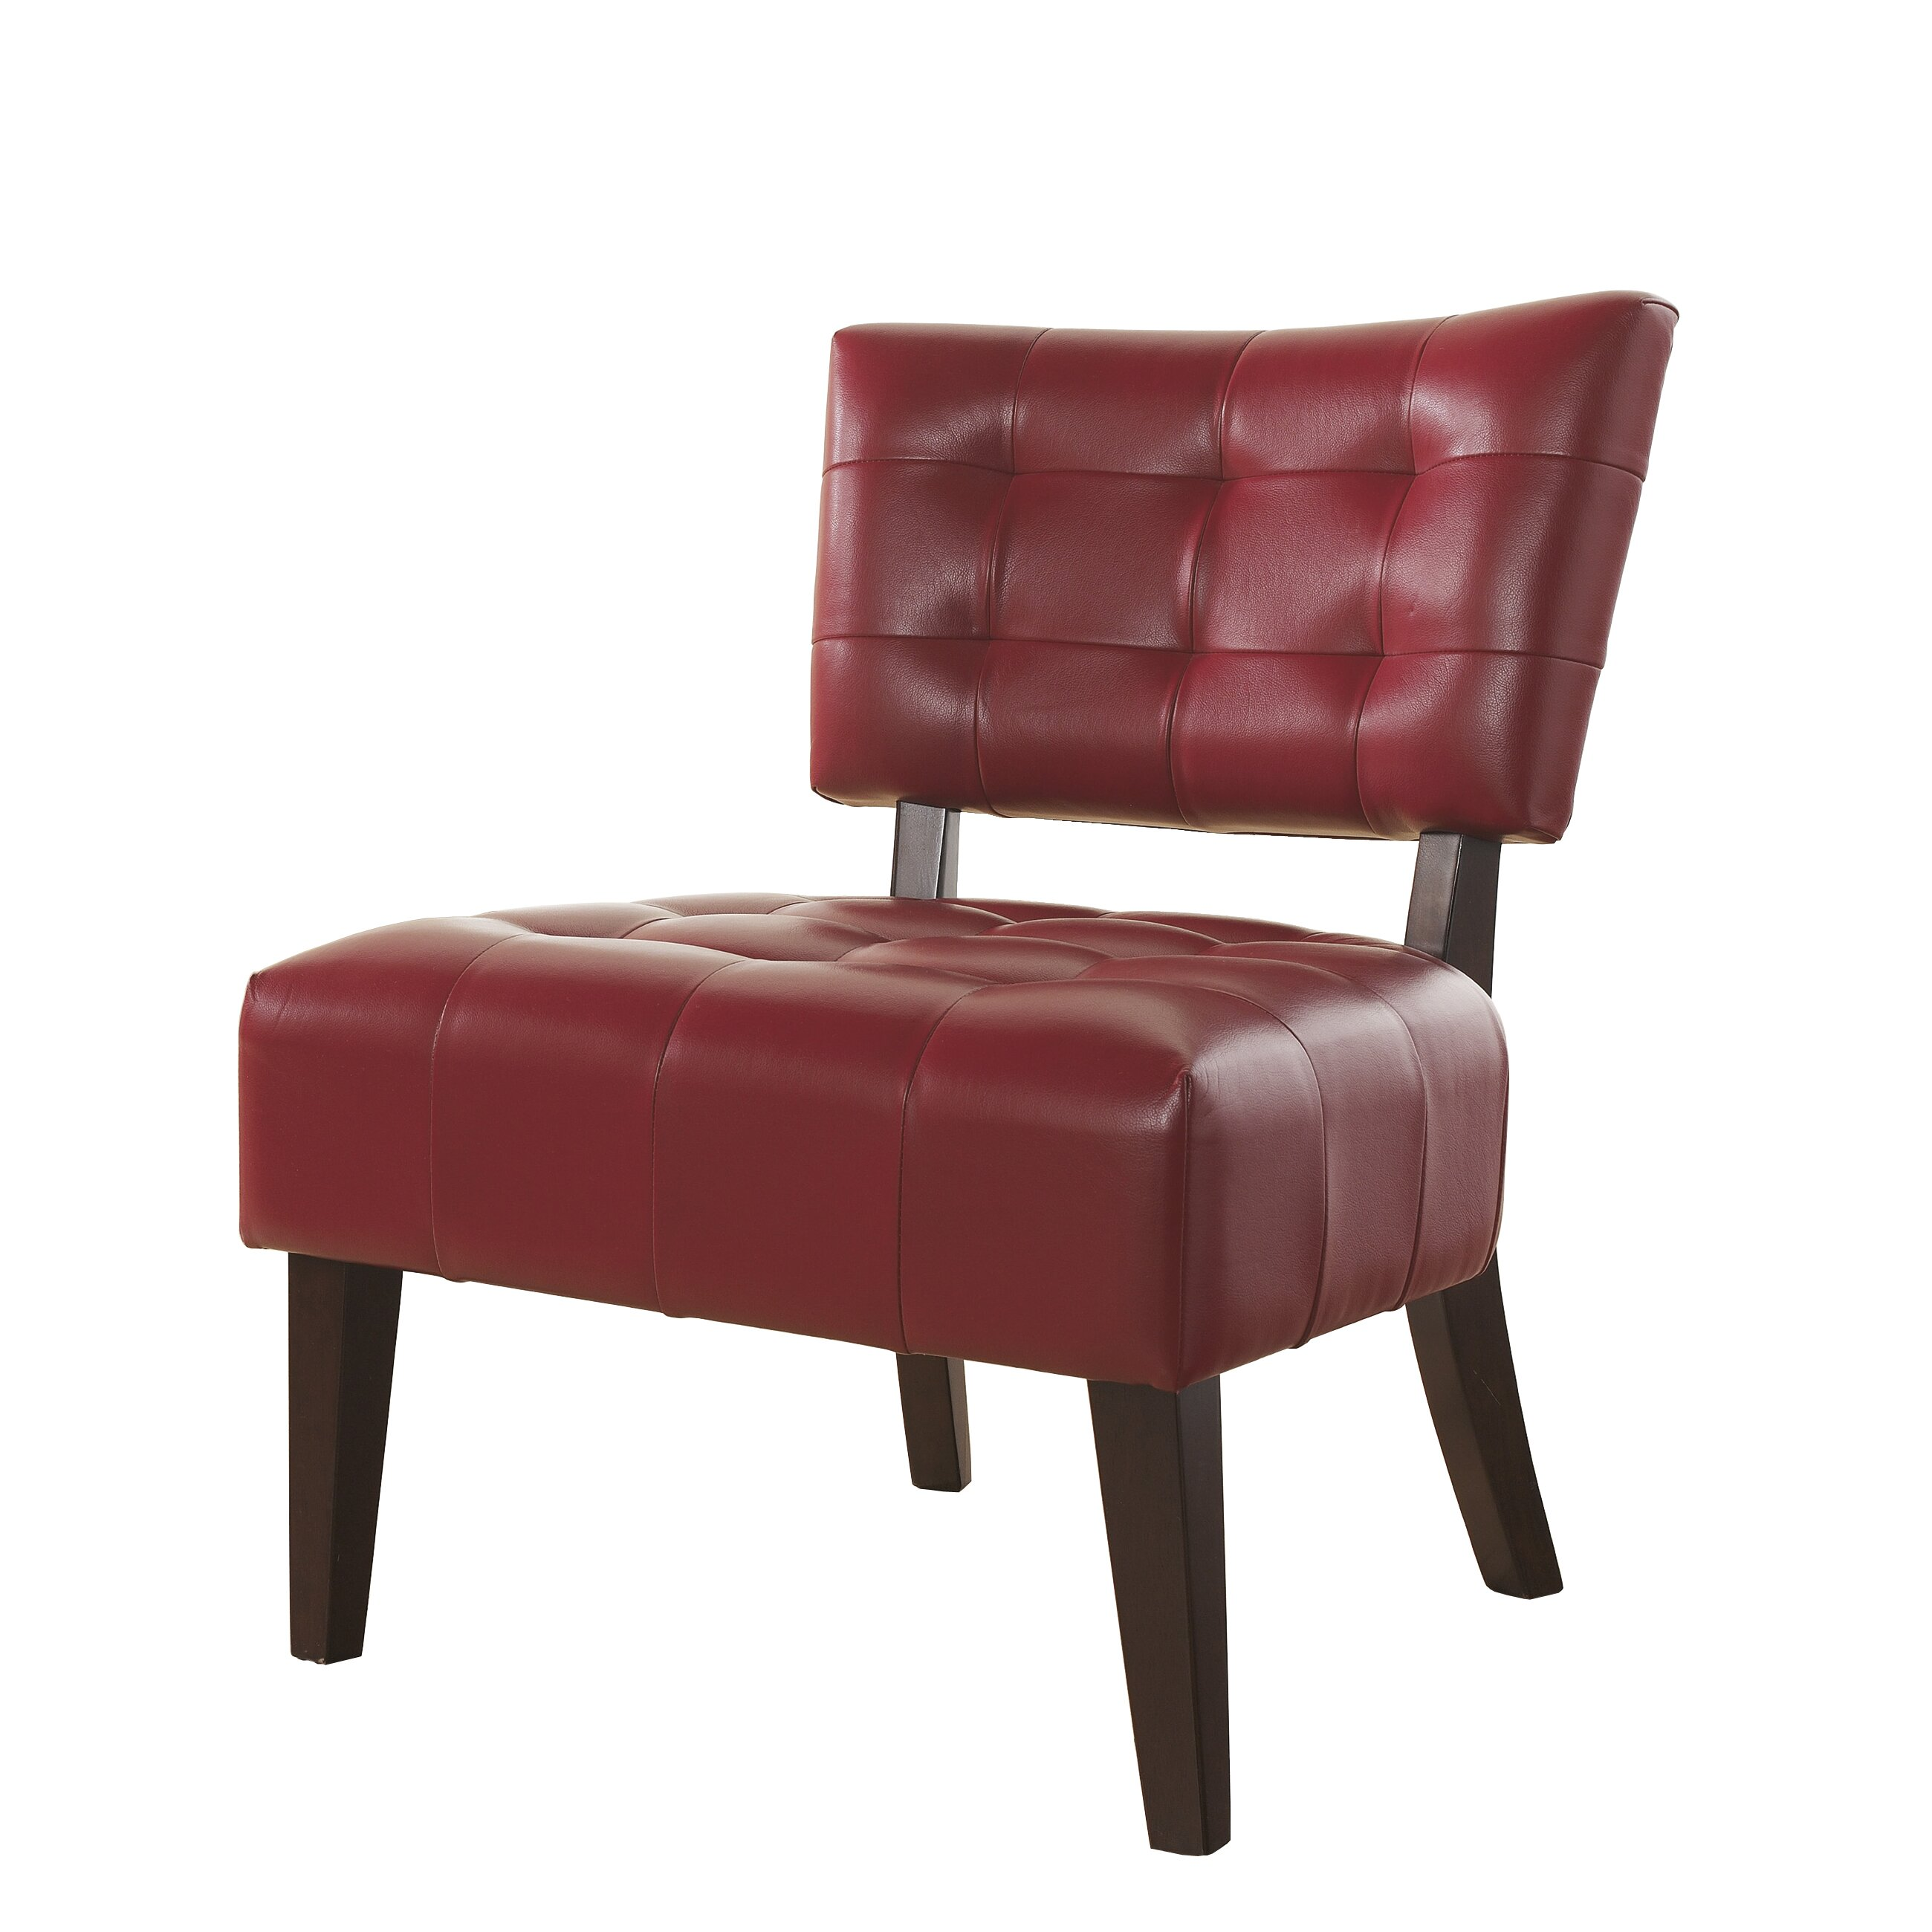 Roundhill Furniture Anjotiya Faux Leather Tufted Chair